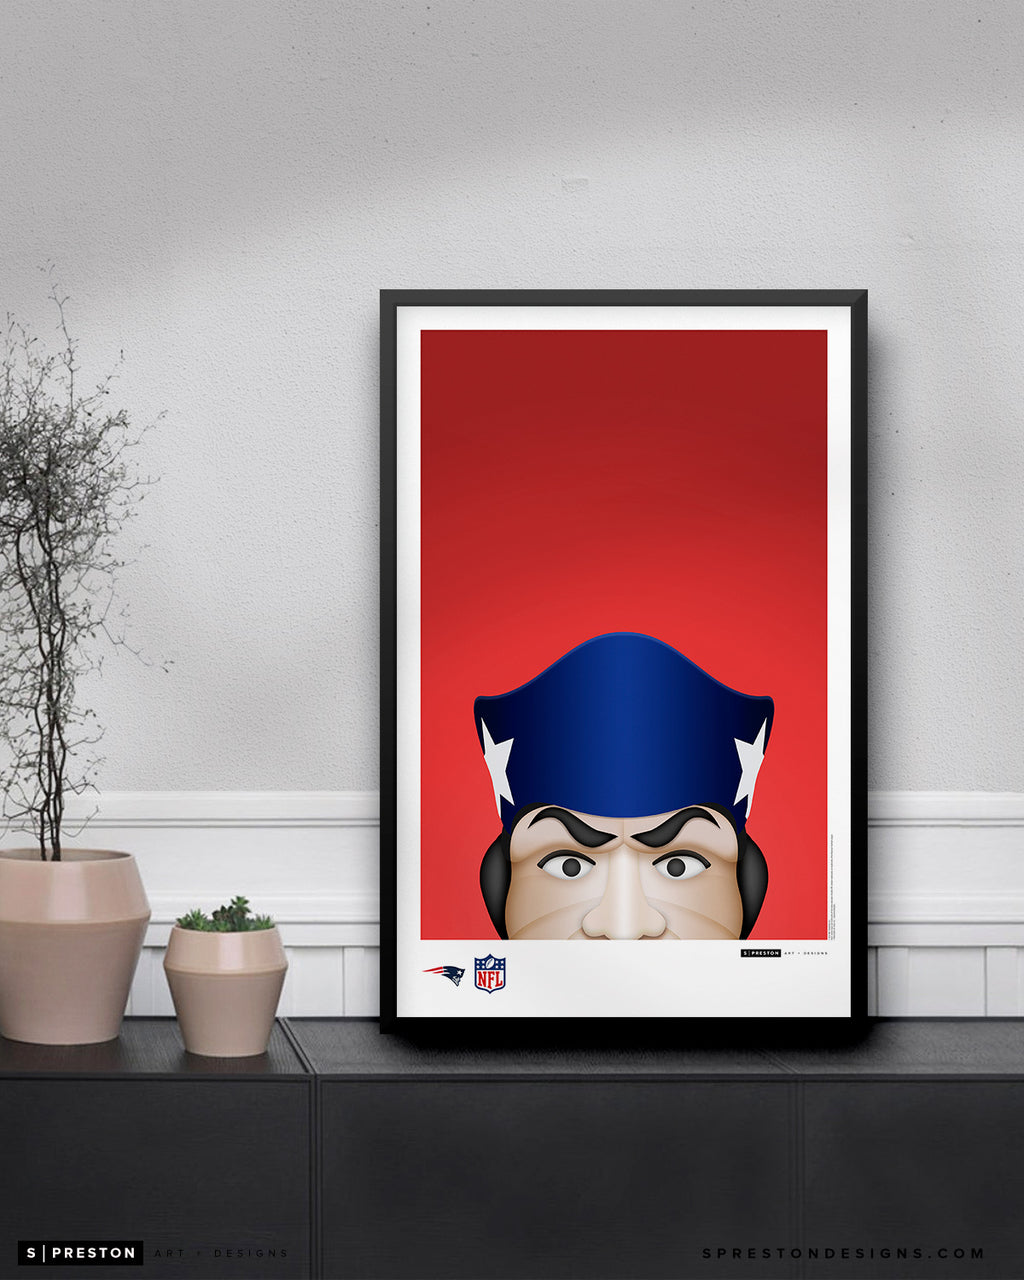 Minimalist Pat Patriot Poster Print New England Patriots - S. Preston